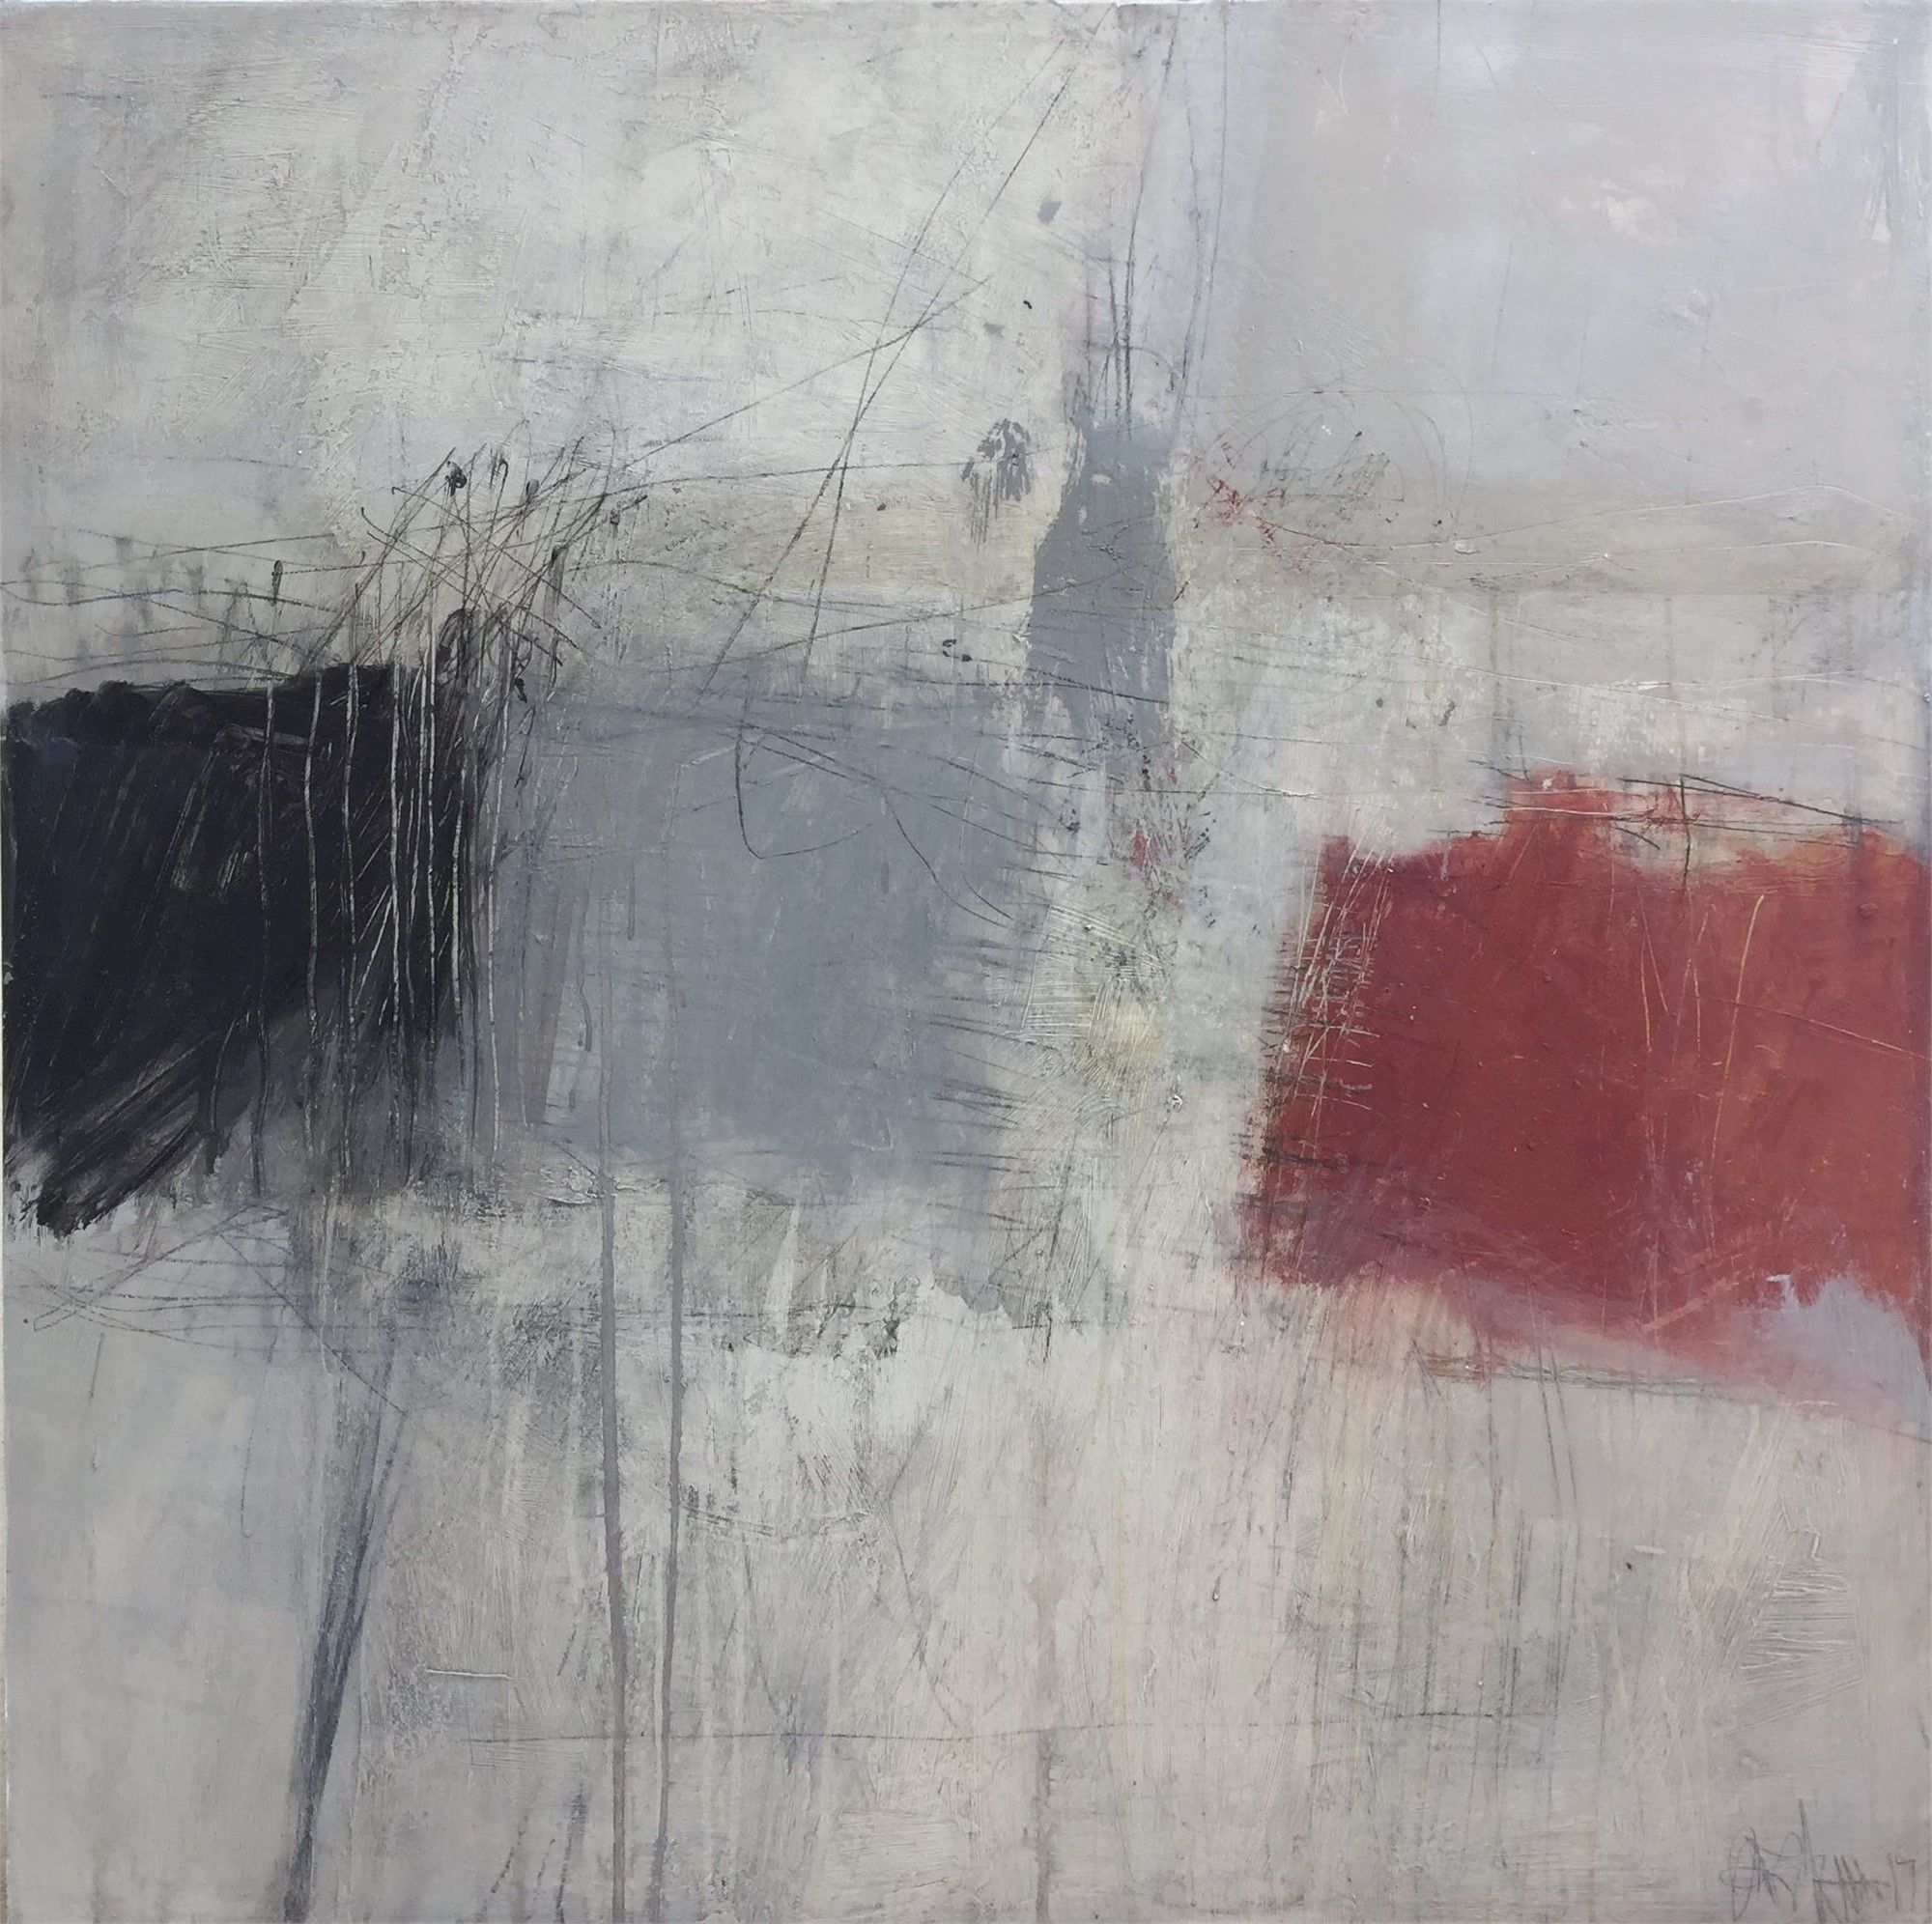 Untitled;  some of the latest new abstract works into the gallery by artist Jeri Ledbetter on view at Thomas Deans Fine Art #art #fineart #gallery #exhibition #paintings #modern #abstract #cotemporary #atlanta #thingstodoin #homedecor